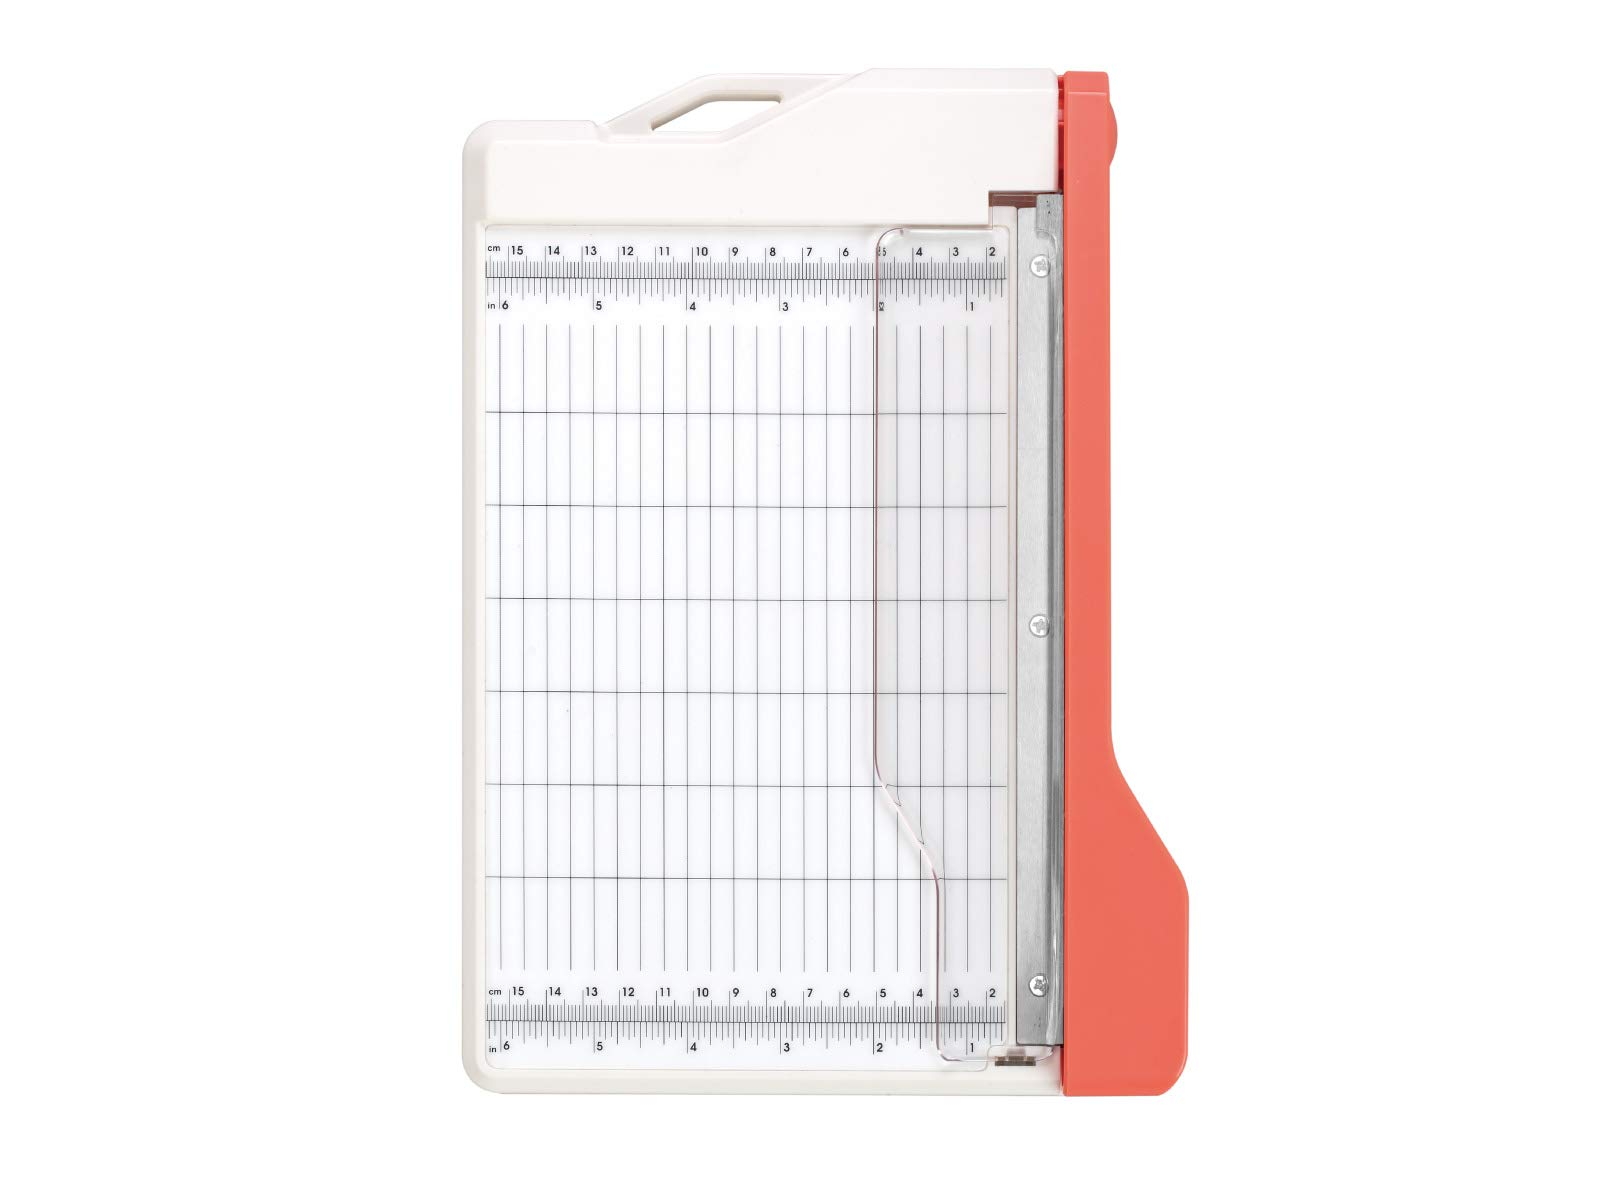 Bira Craft Guillotine Paper Trimmer, Guillotine Paper Cutter, 8.5 inch Cut Length, for Coupon, Craft Paper and Photo by Bira Craft